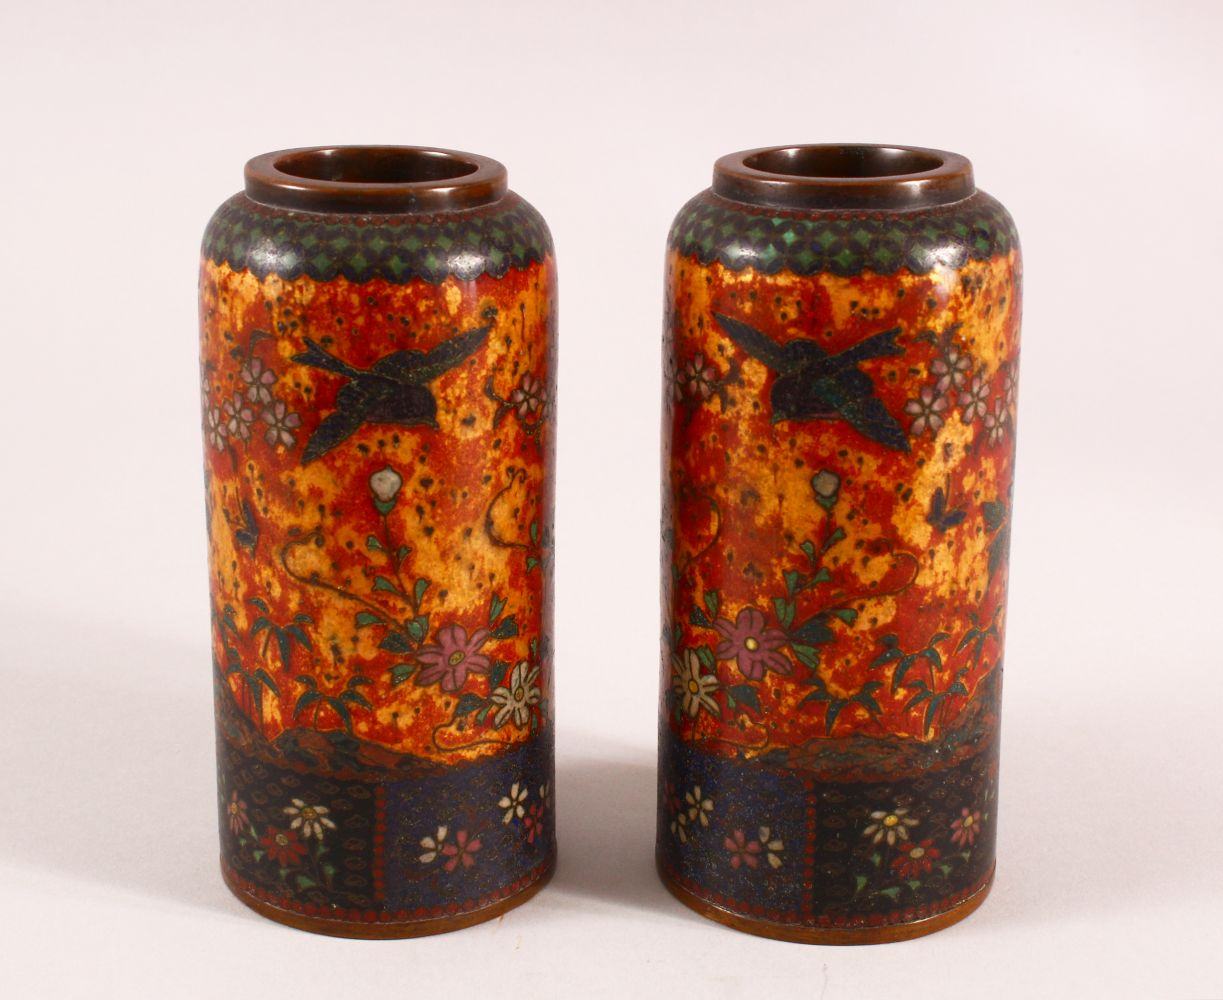 A PAIR OF JAPANESE CLOISONNE VASES OF CYLINDRICAL FORM, gold ground, 15cm high.